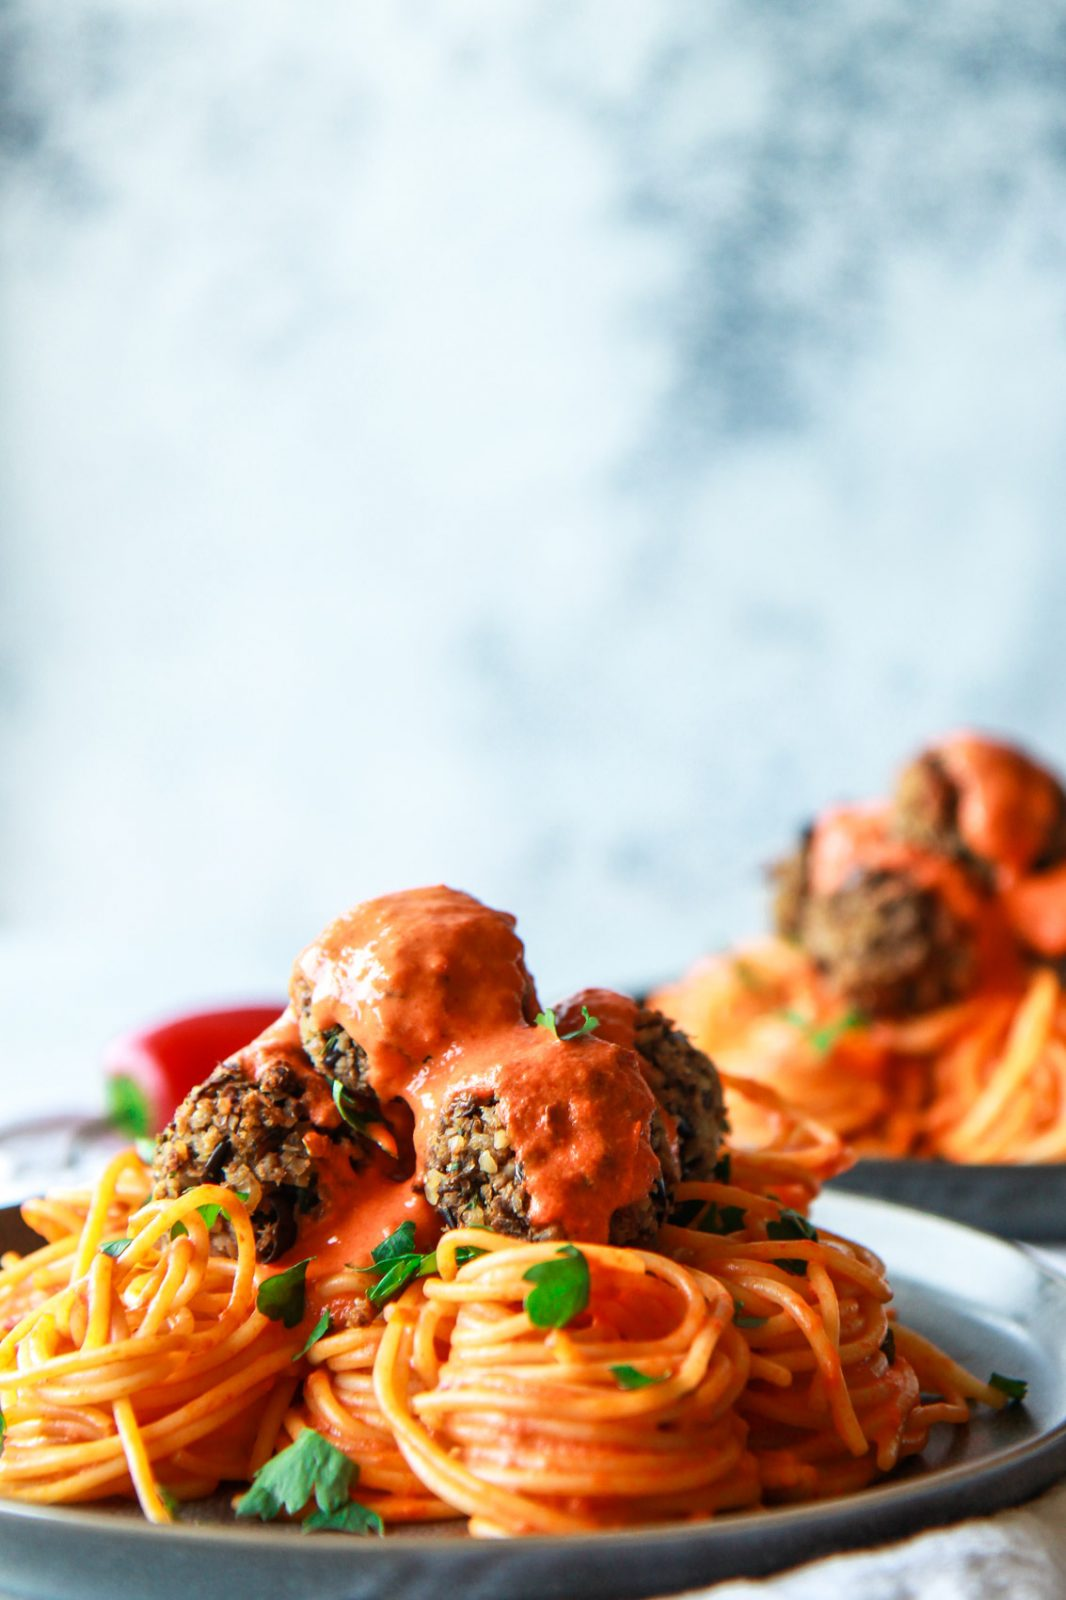 These eggplant meatballs are complemented with a roasted red pepper tahini sauce, served over pasta. Made with eggplants, walnuts, and parsley, these vegan meatballs are gluten-free with an oil-free option.